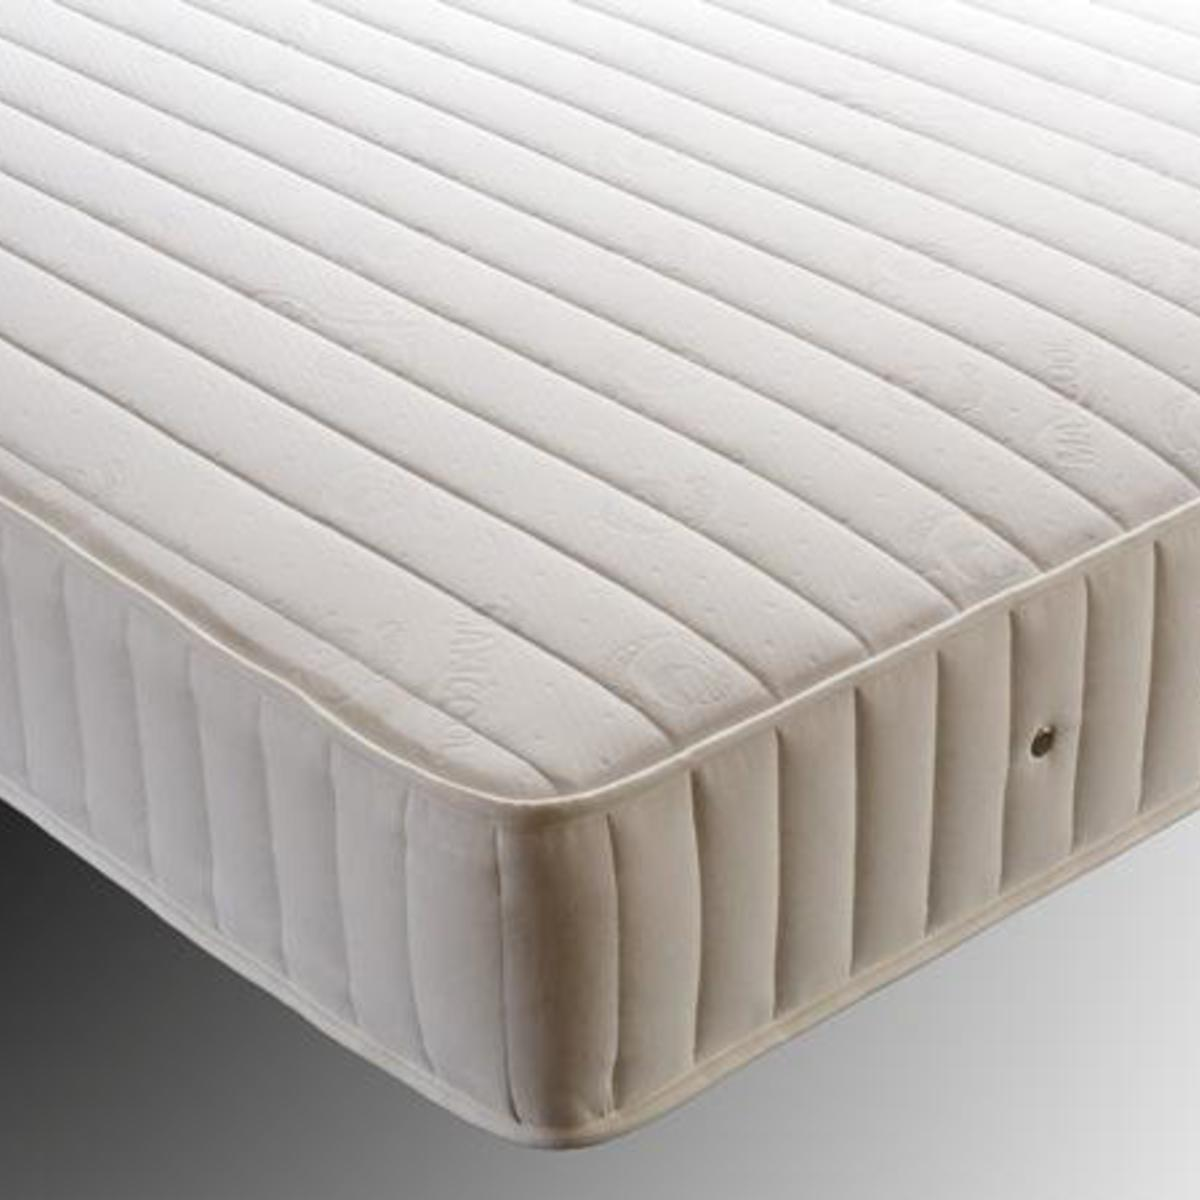 Deluxe Ortho Coil Spring Mattress (Hard) 150cm